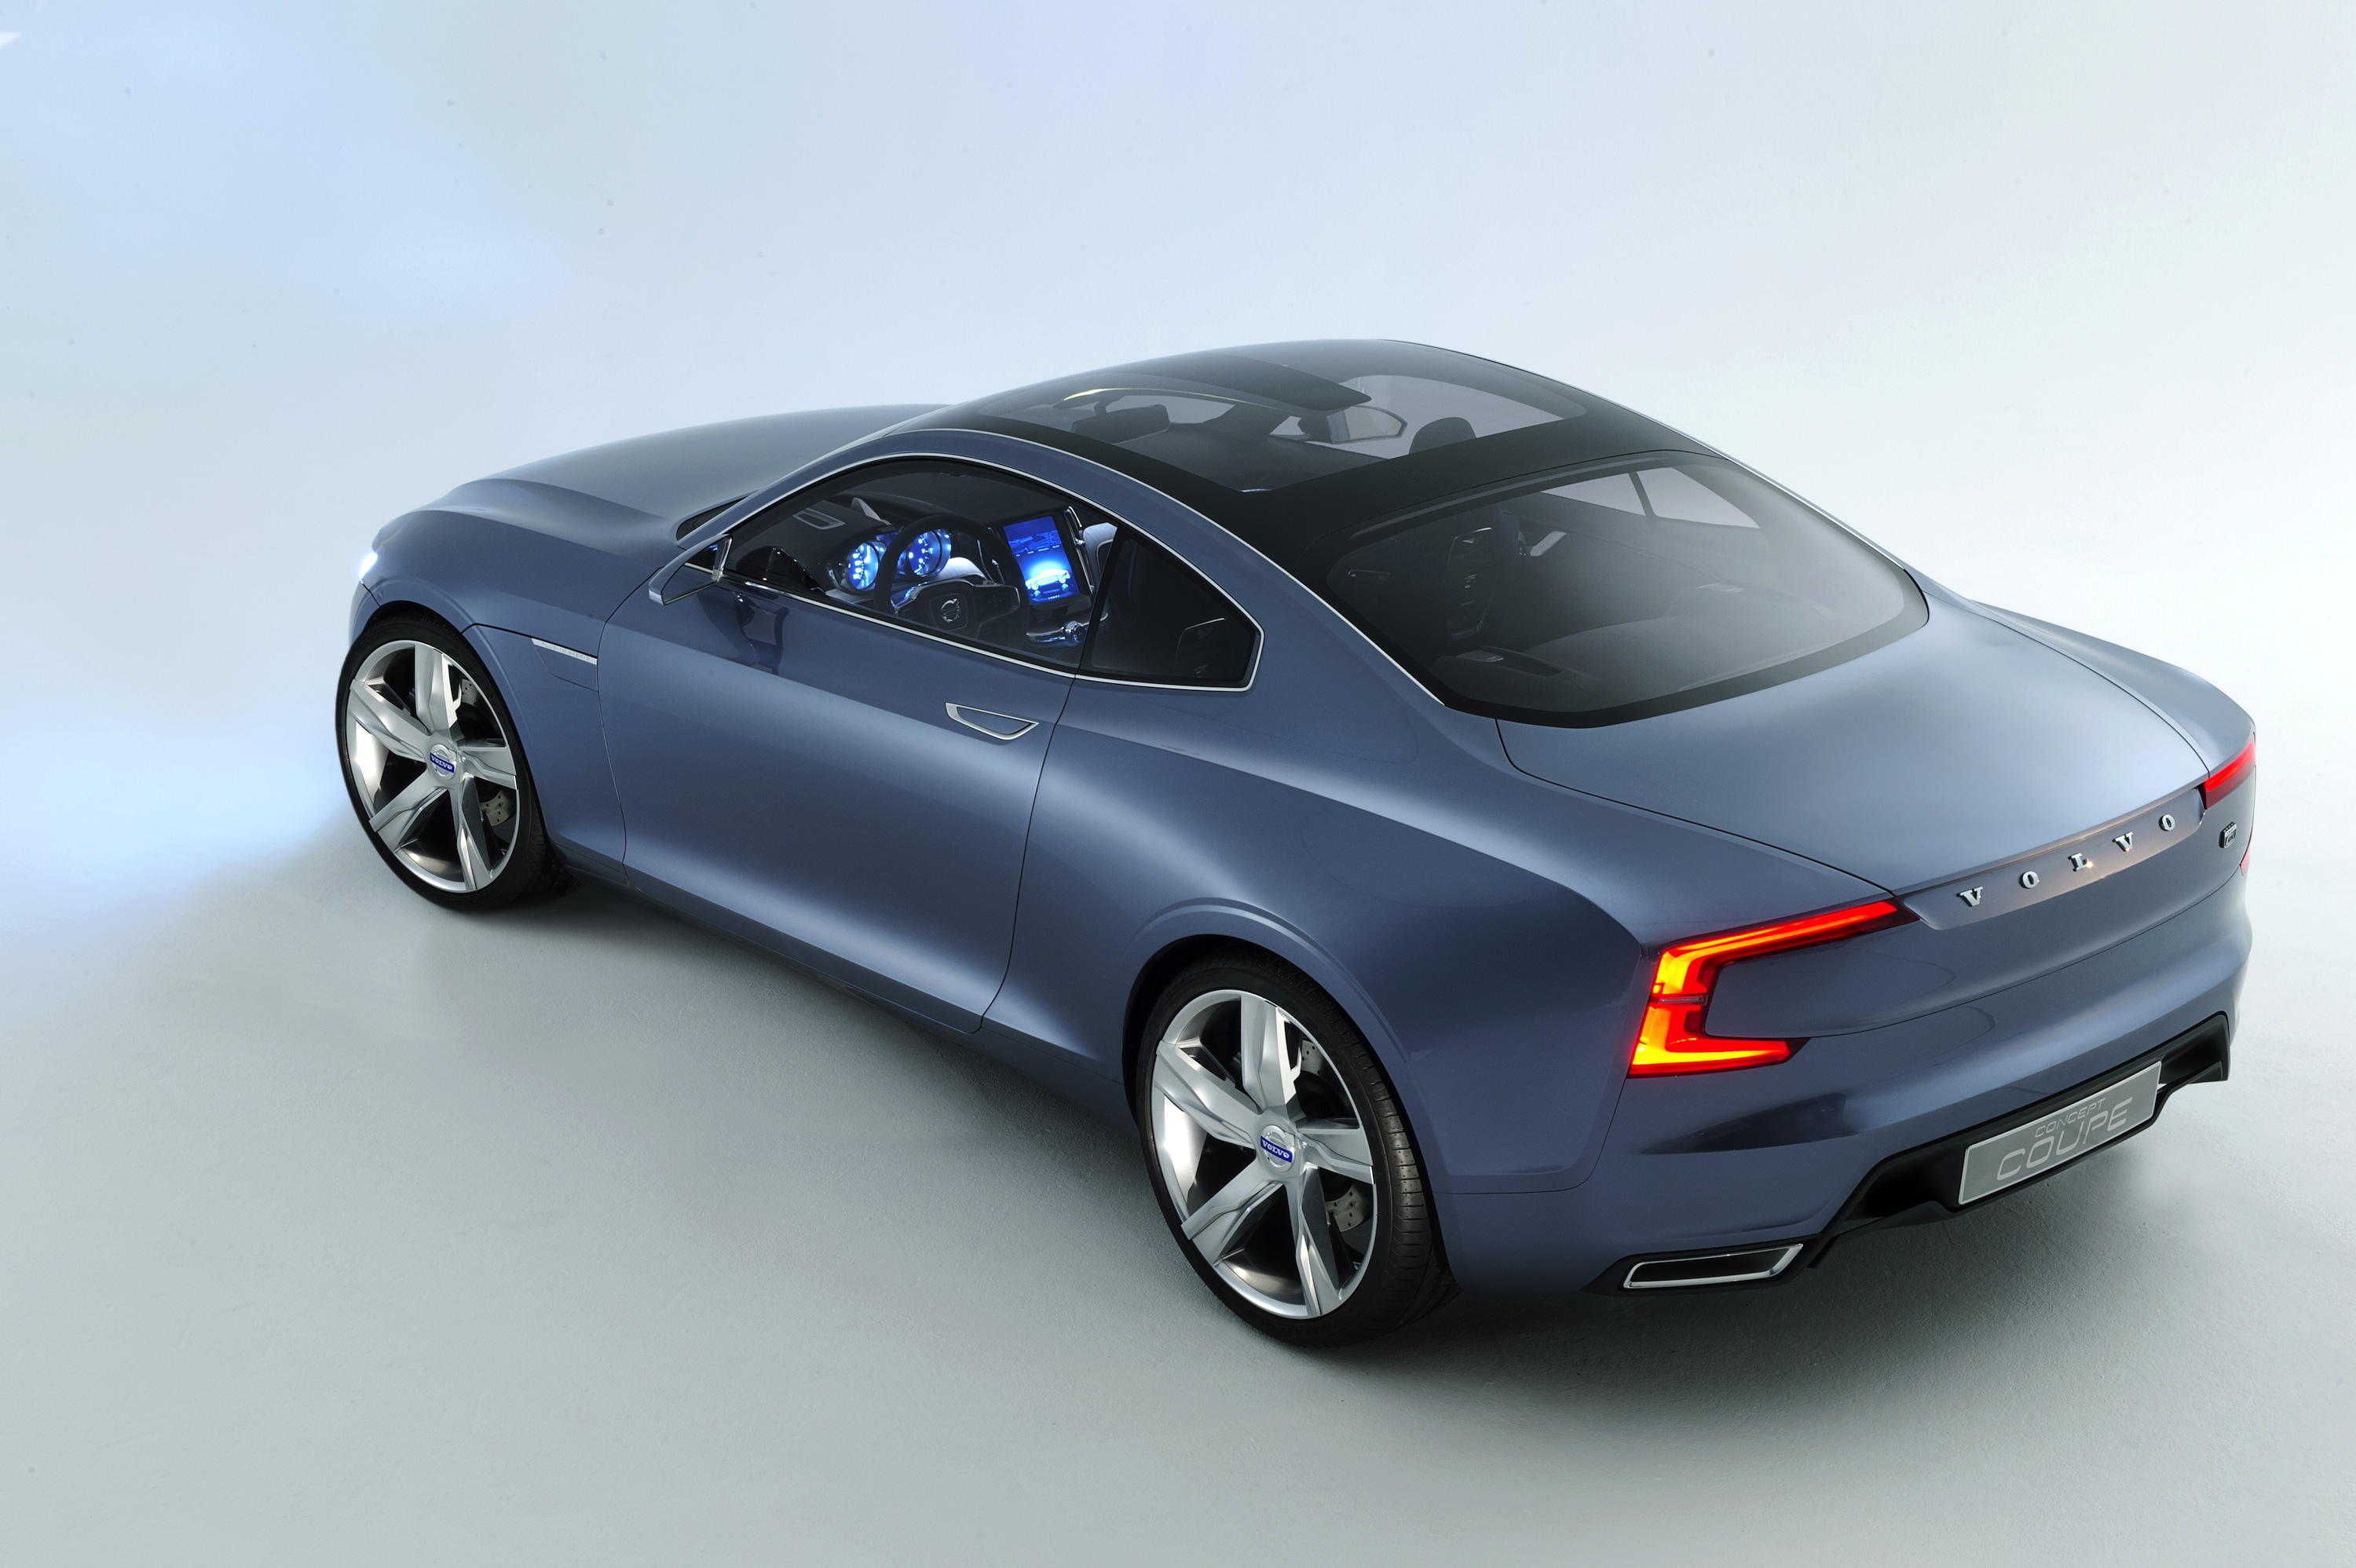 Volvo's Scandinavian Design-Inspired Concept Coupe